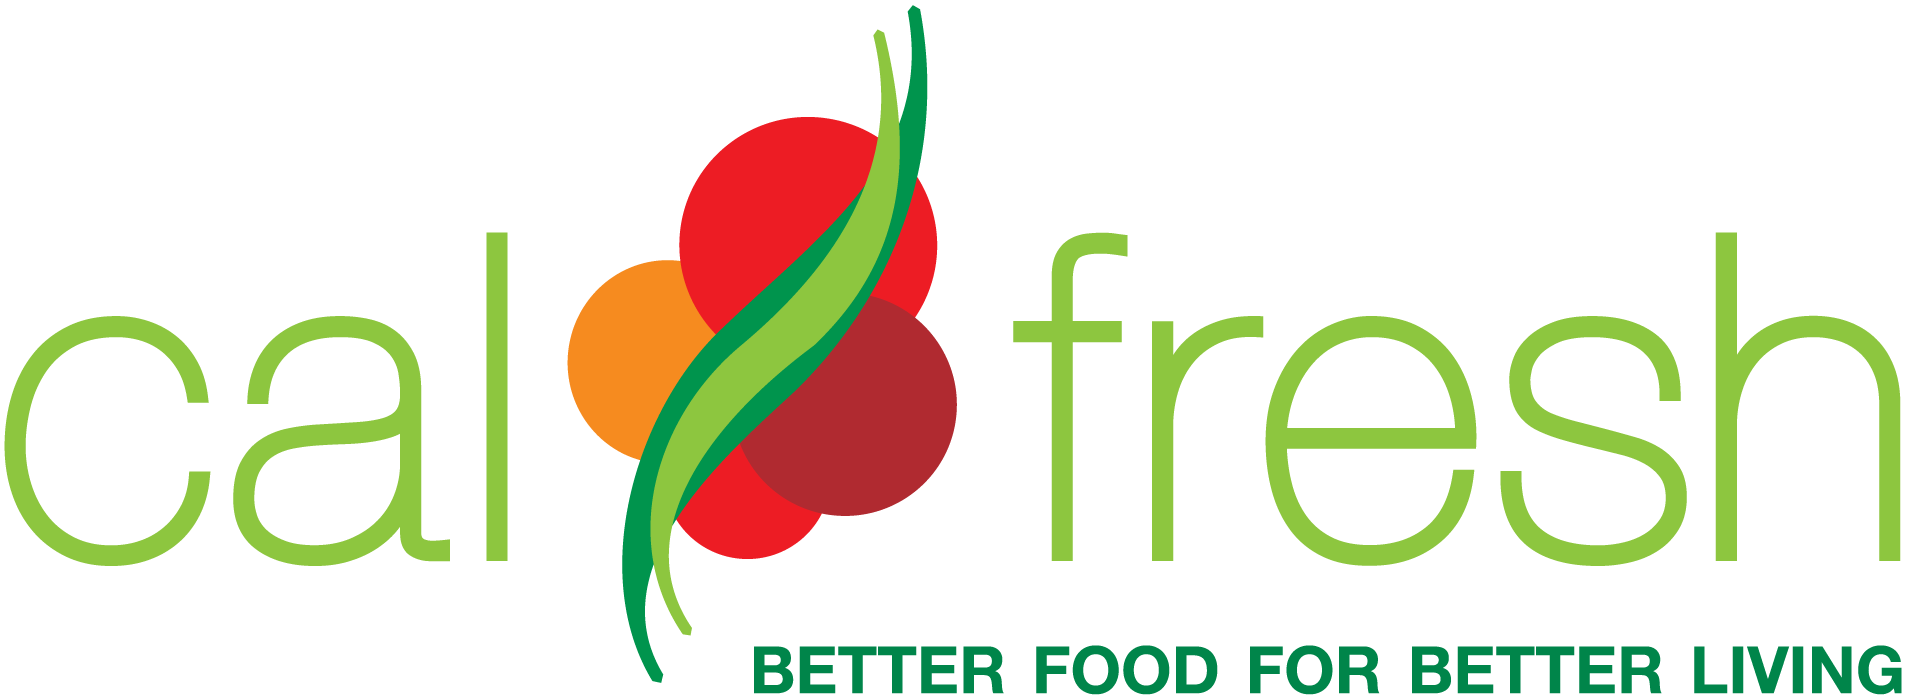 CalFresh Better Food For Better Living